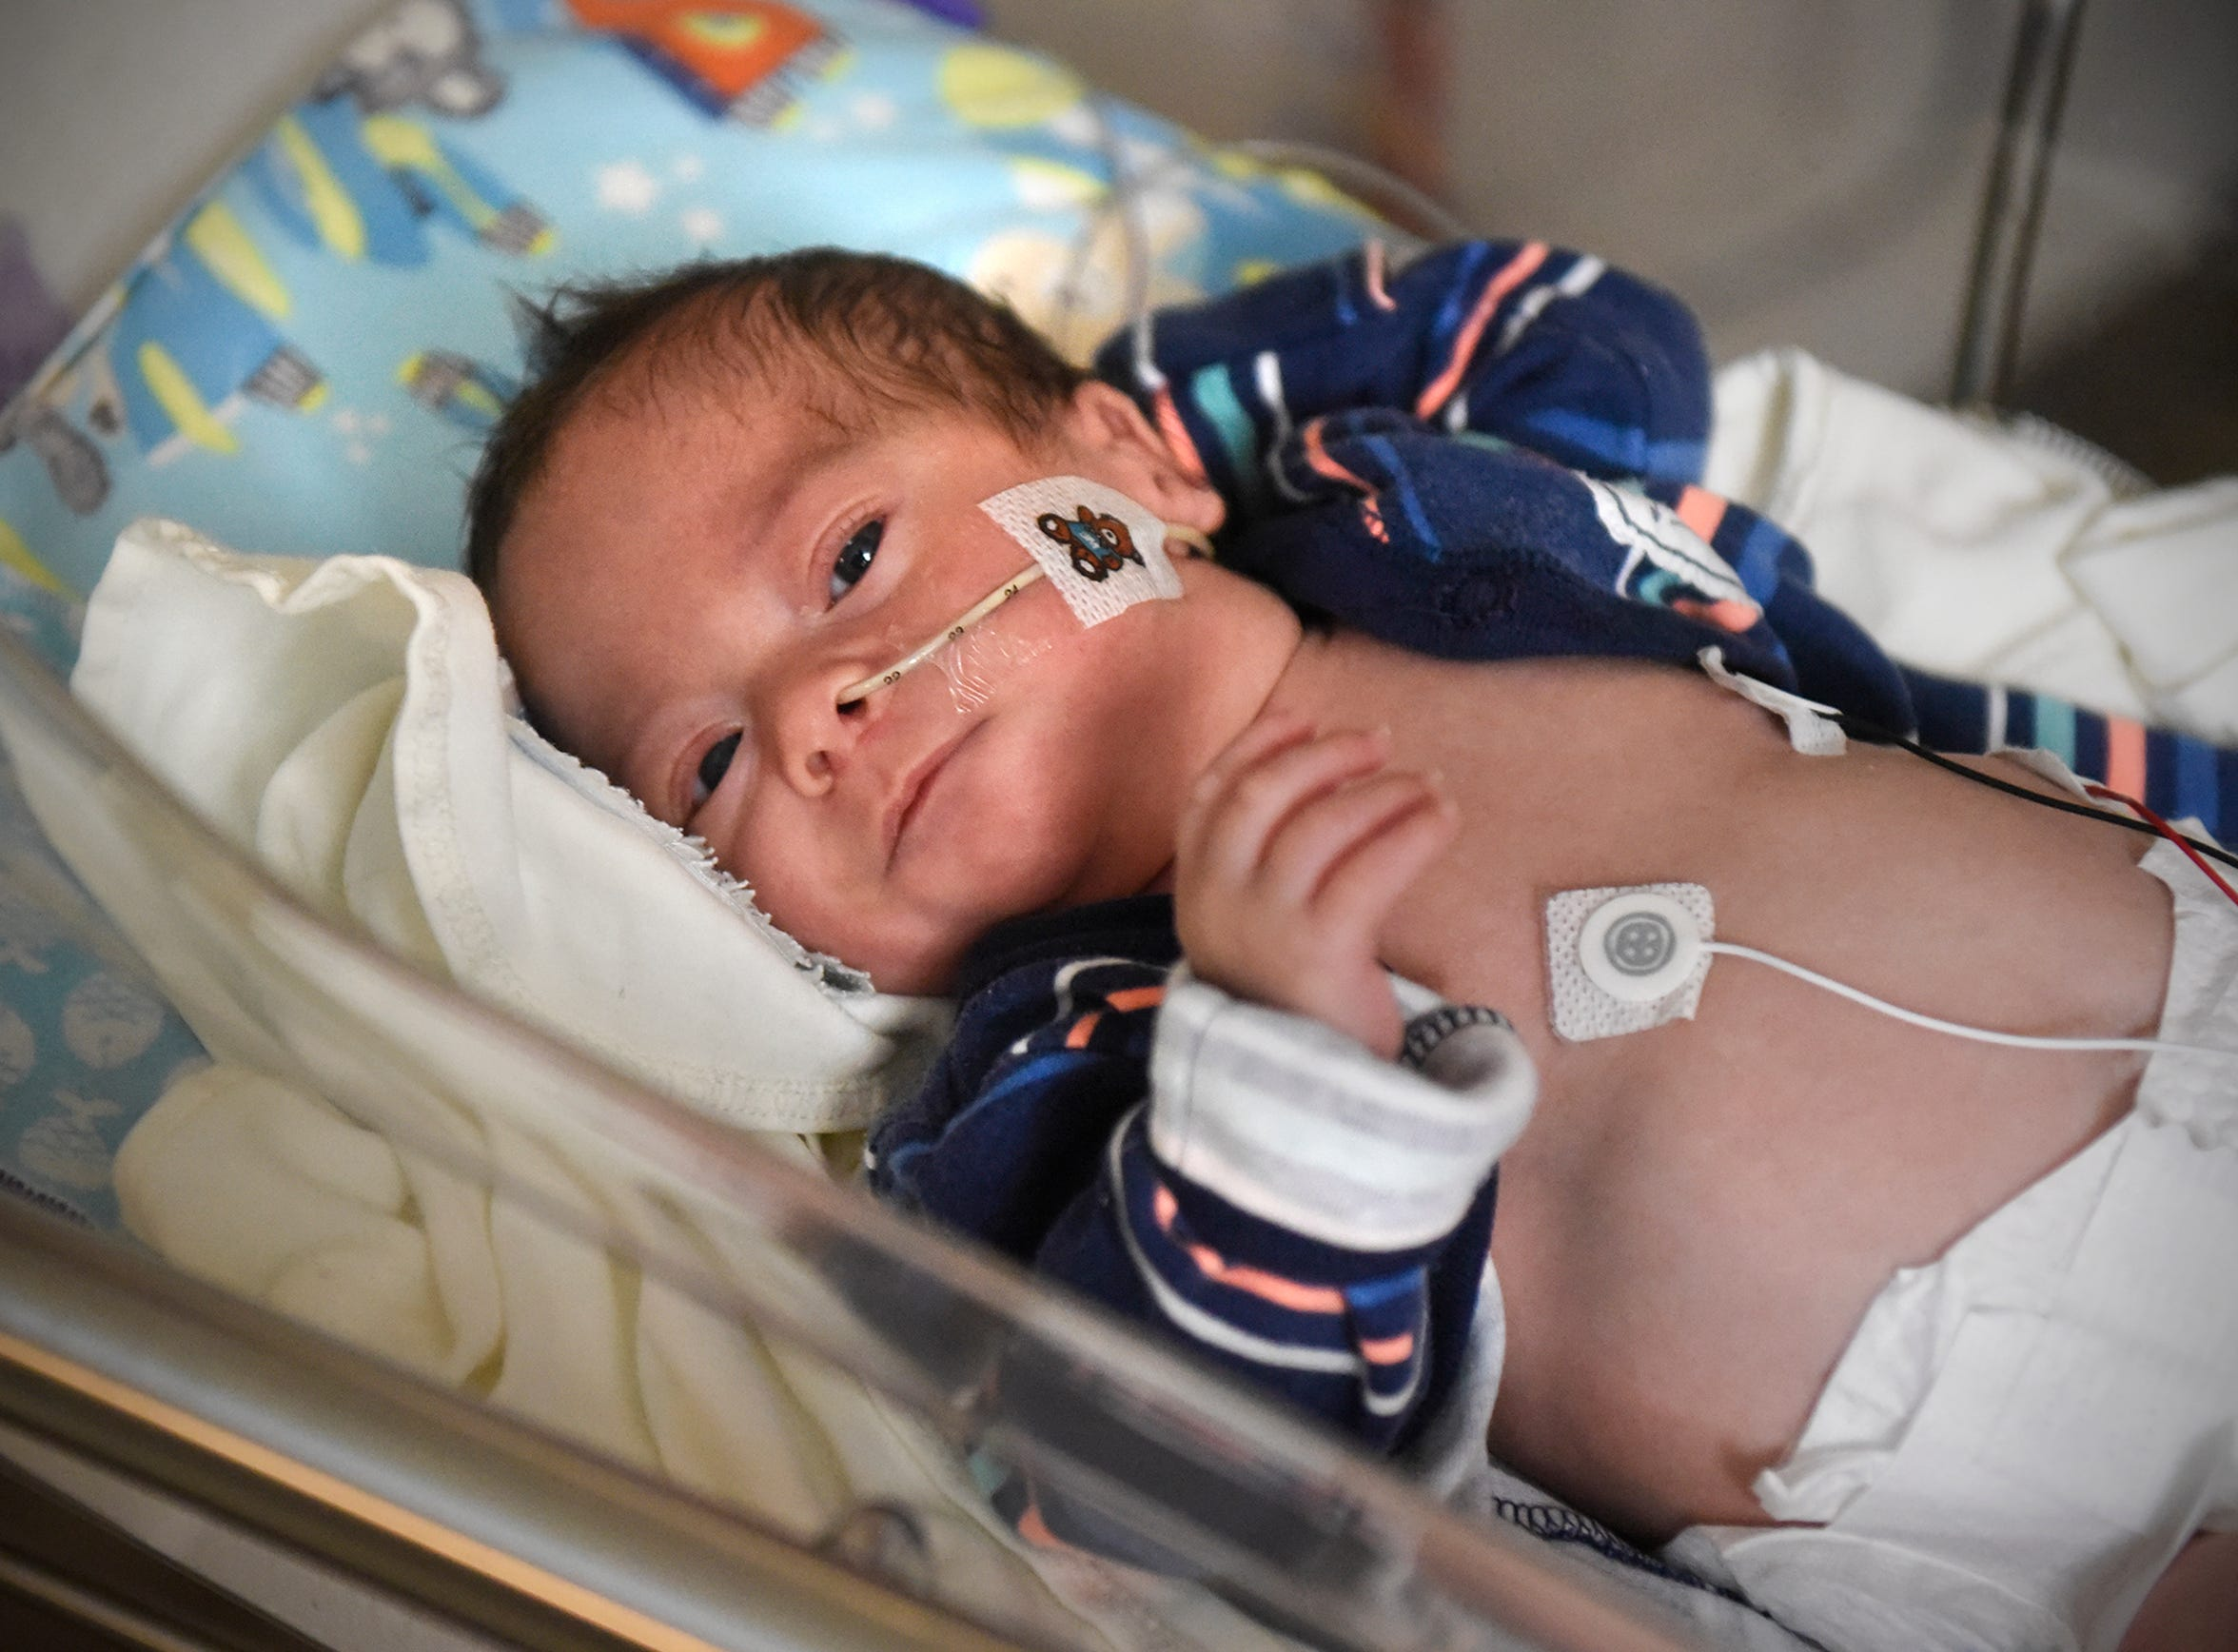 Joshua Johnson wakes up from a nap Wednesday, Dec. 12, at the St. Cloud Hospital's Neonatal Intensive Care Unit.